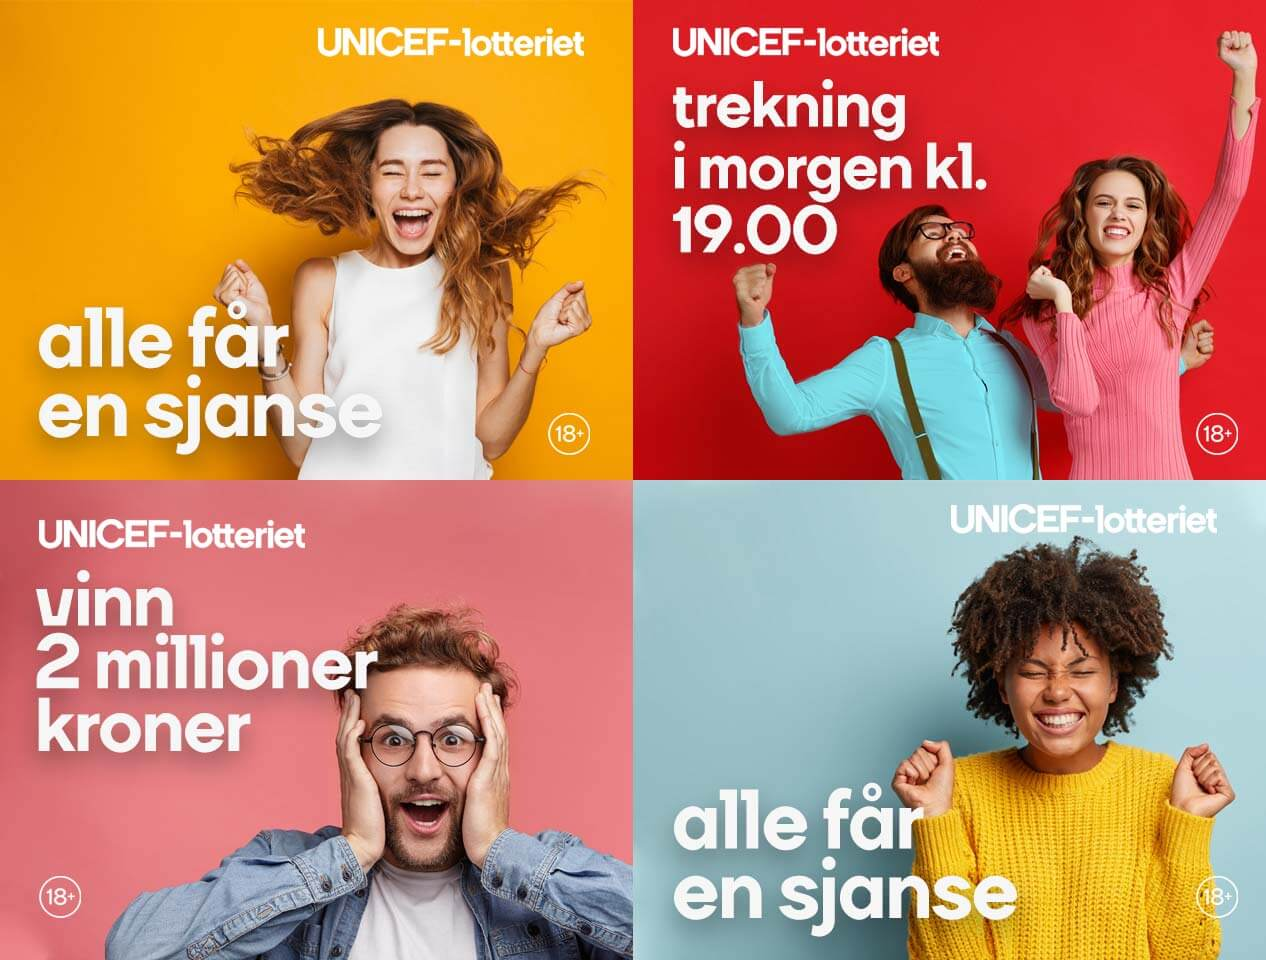 Image showing four types of social media advert used for UNICEF-lotteriet